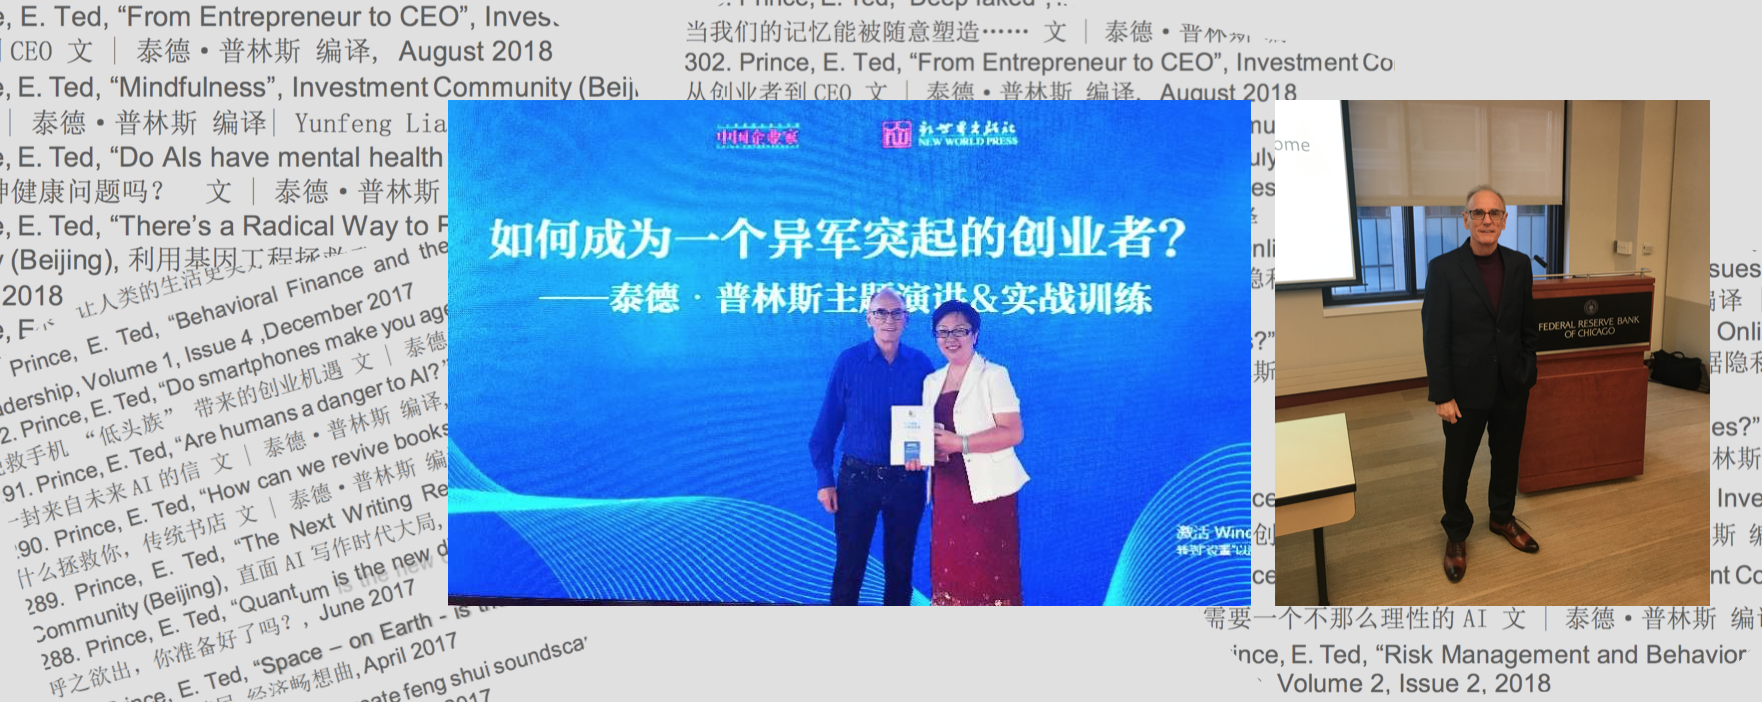 Helping to Invent the Future, GloballyChinese Entrepreneurs AssociationNew World Press, BeijingFederal Reserve Bank of Chicago